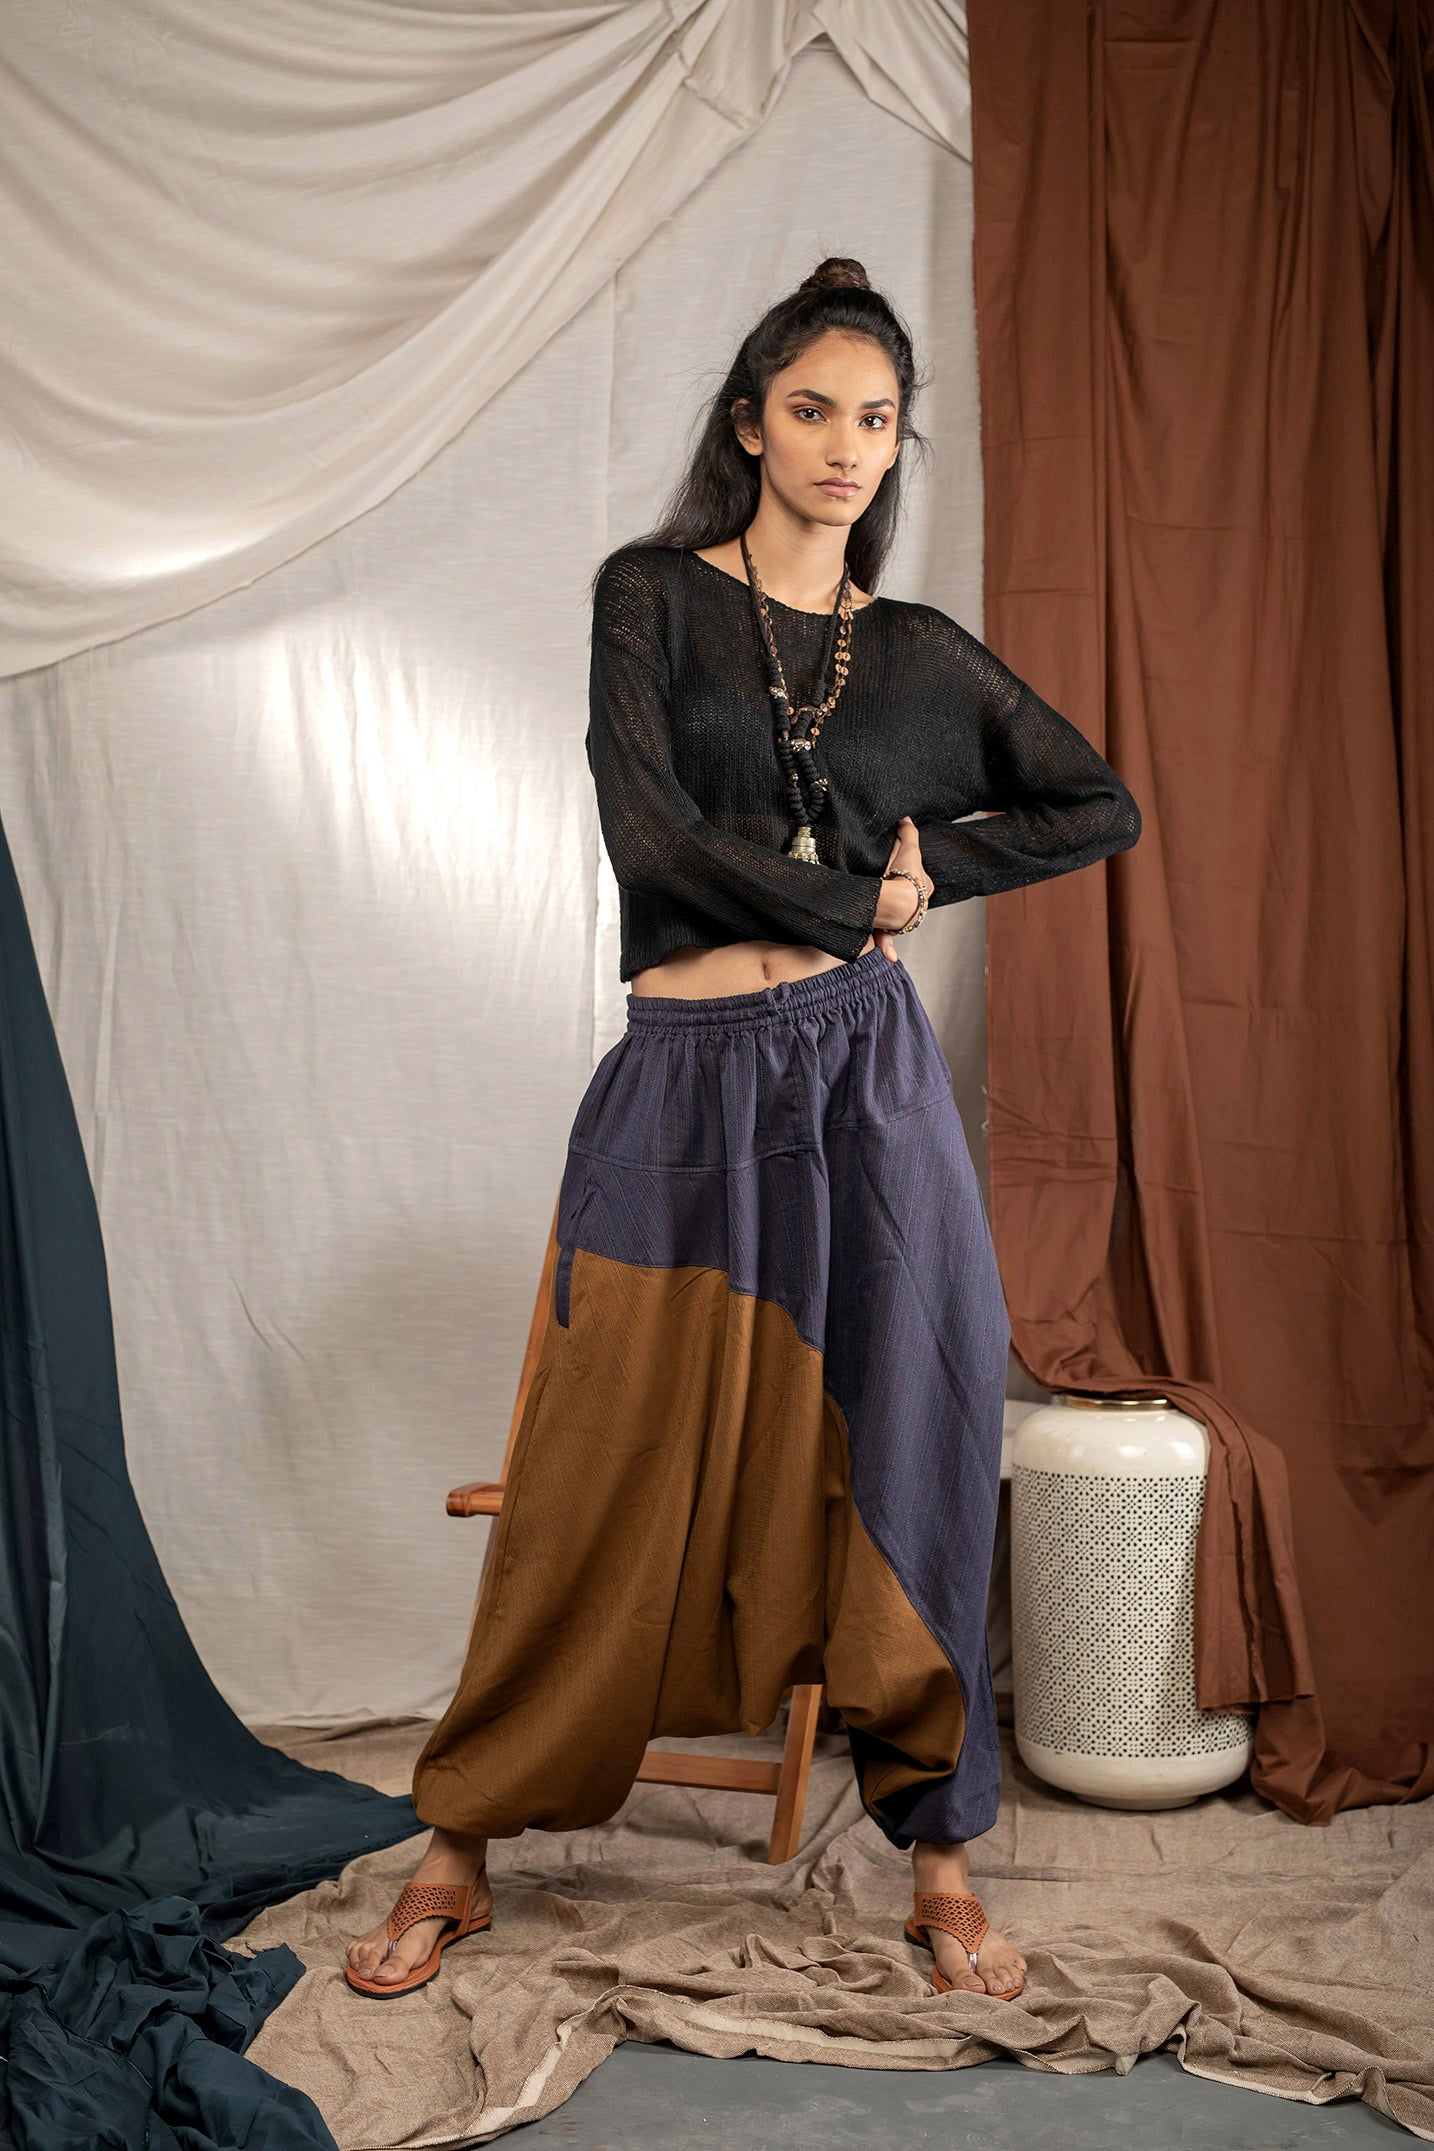 Urban Gallivanter - Buy Harem Pant / Hippie Pants / Boho Pants / online by The Veshti Company